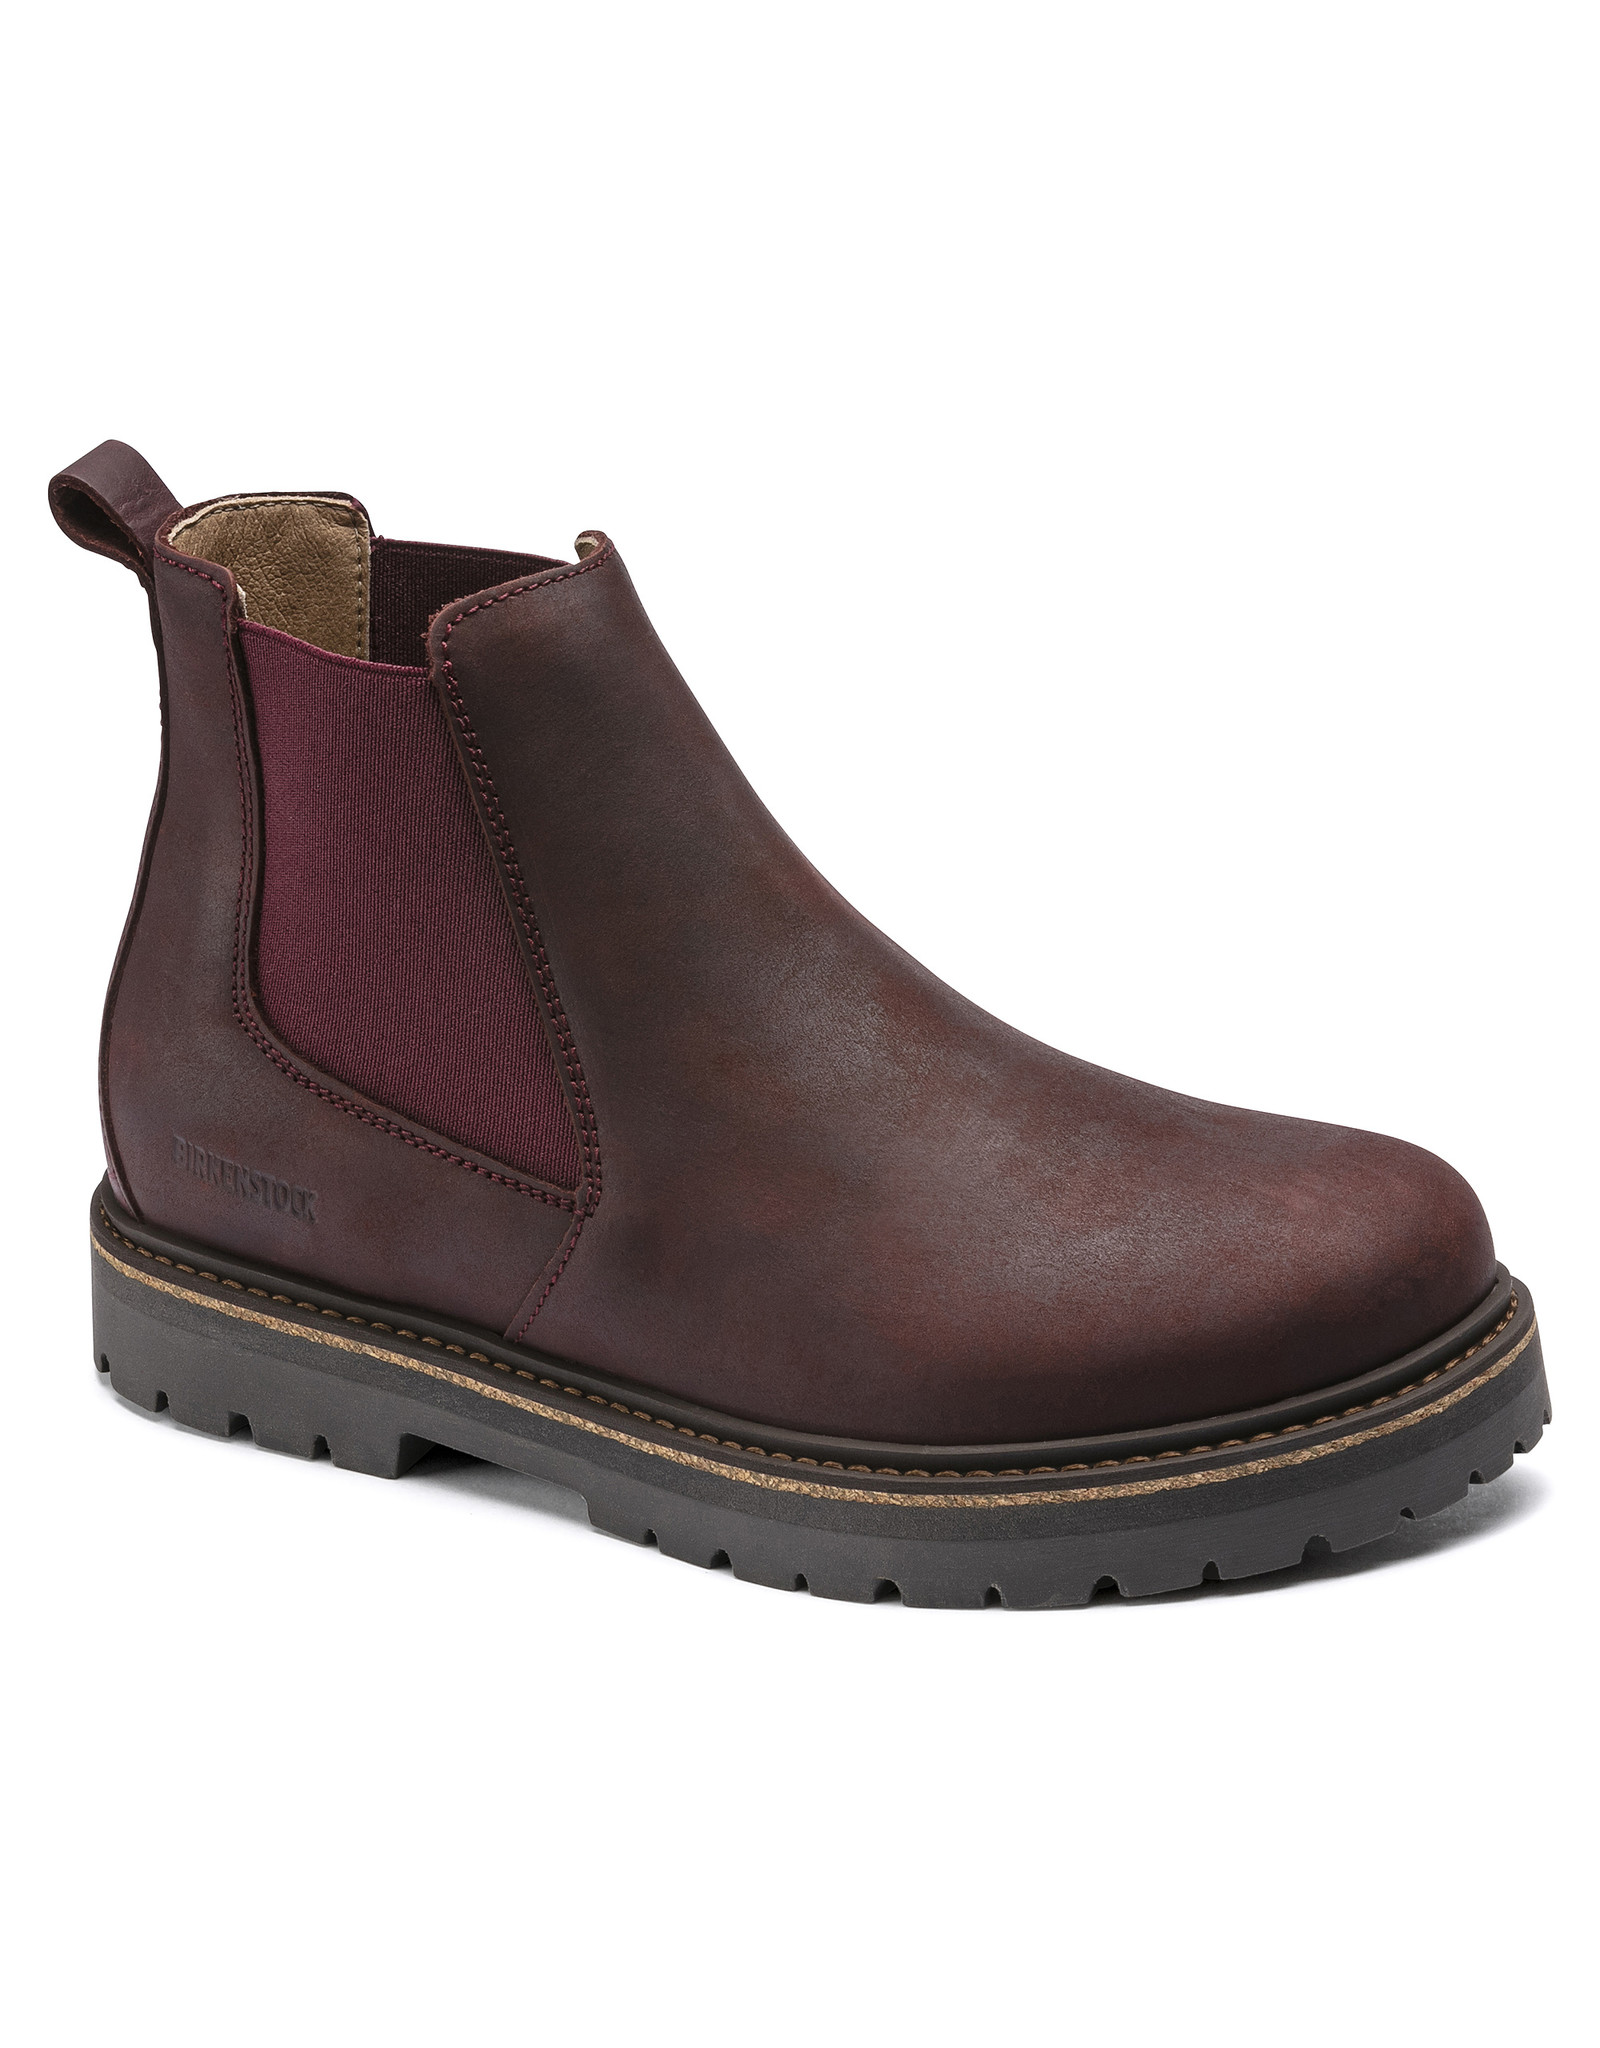 BIRKENSTOCK STALON NUBUCK LEATHER-BURGUNDY